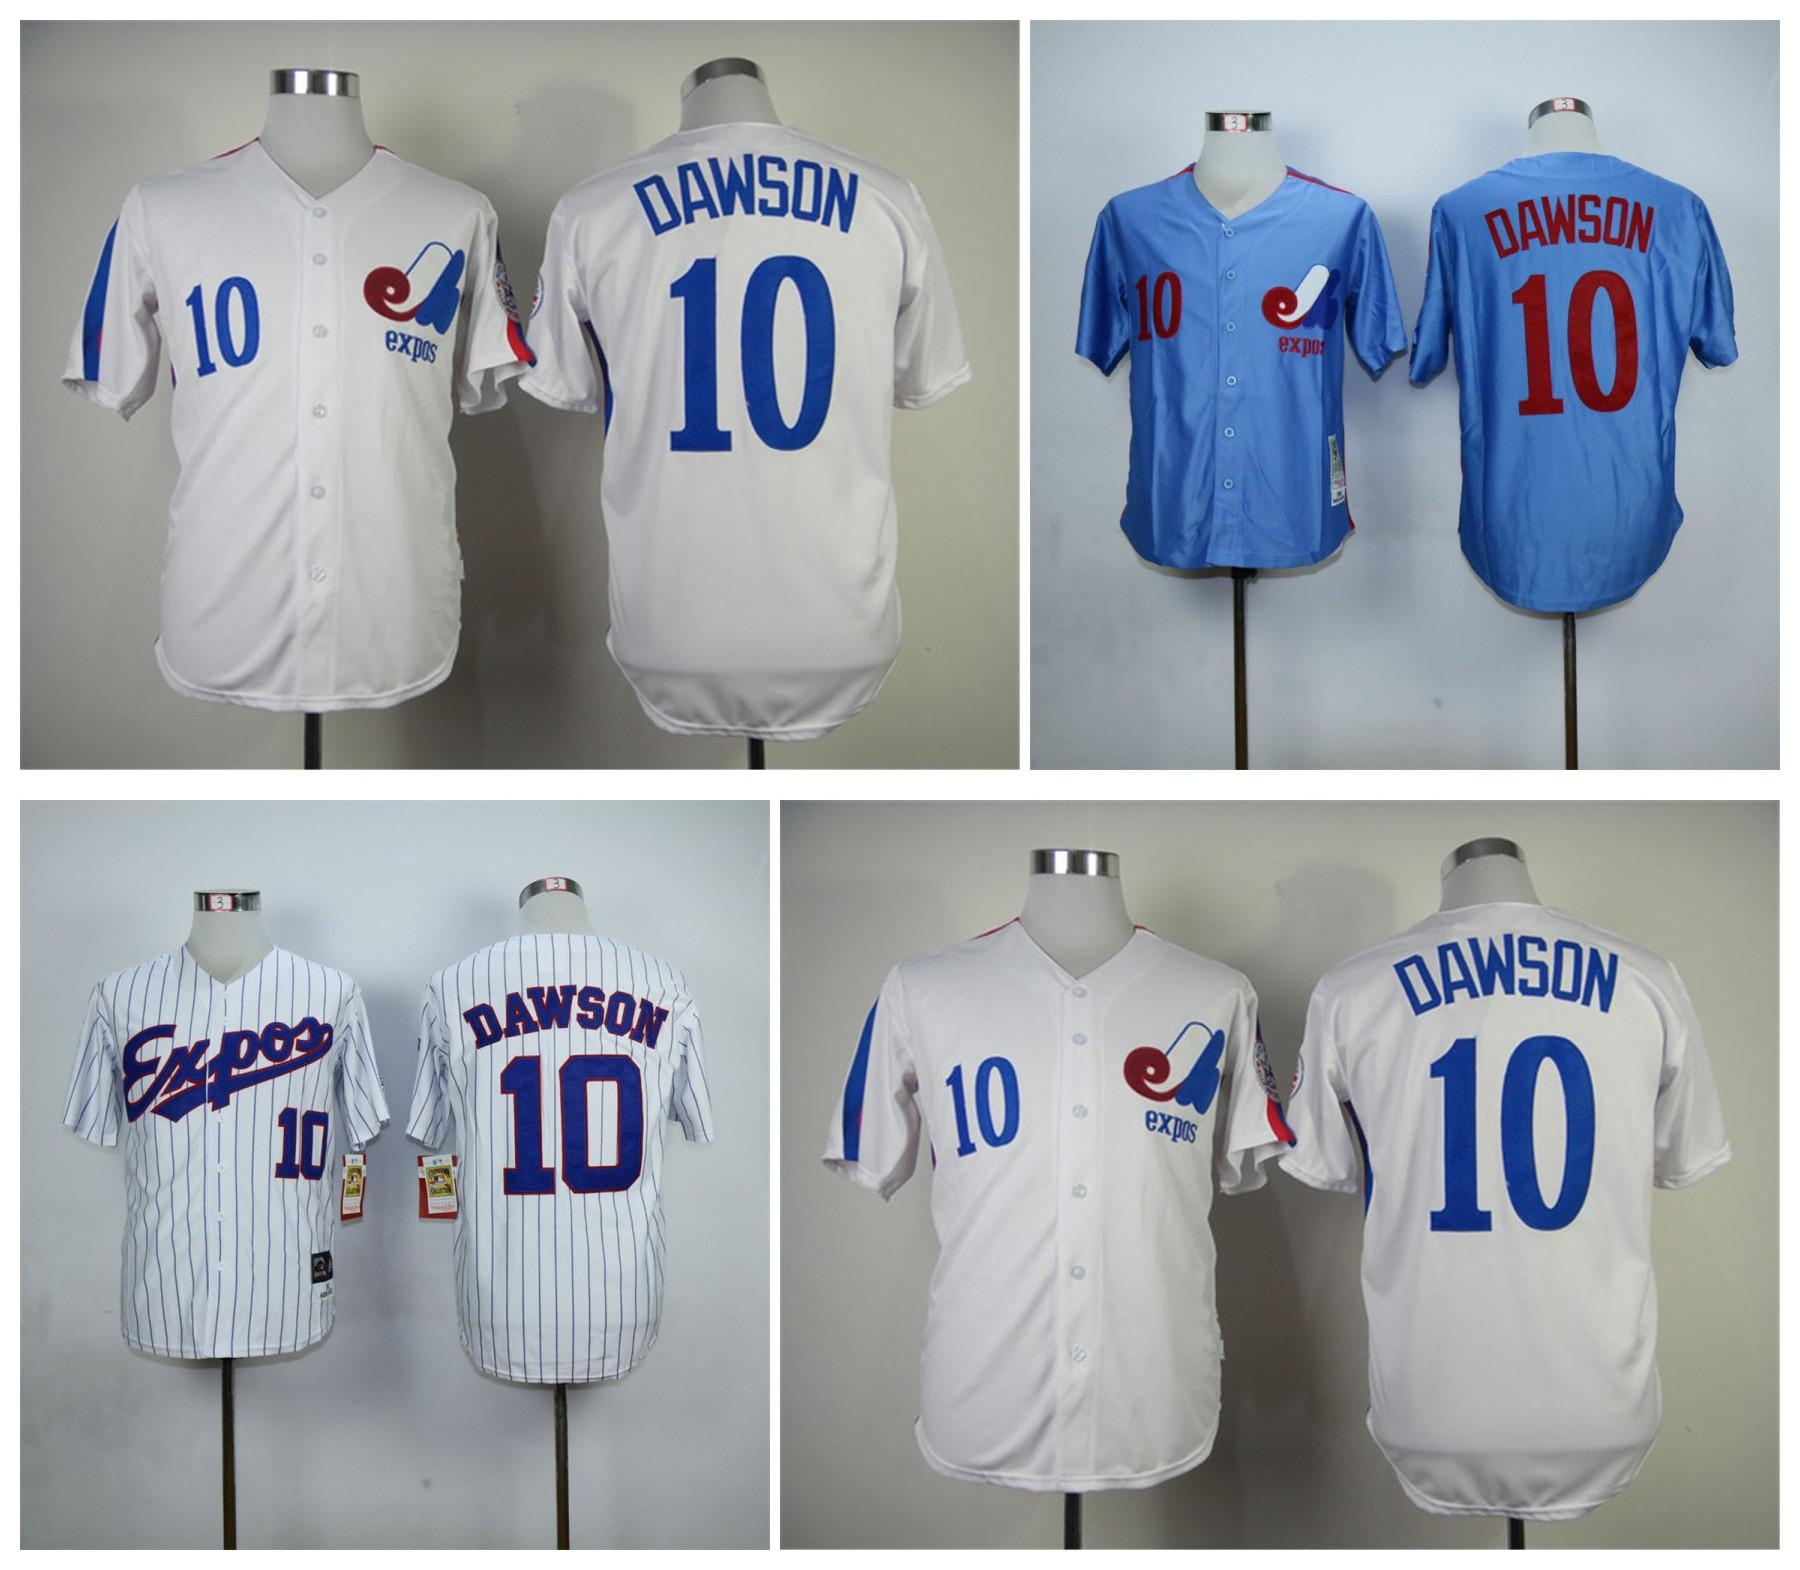 best authentic 18be5 e44d8 10 andre dawson jersey